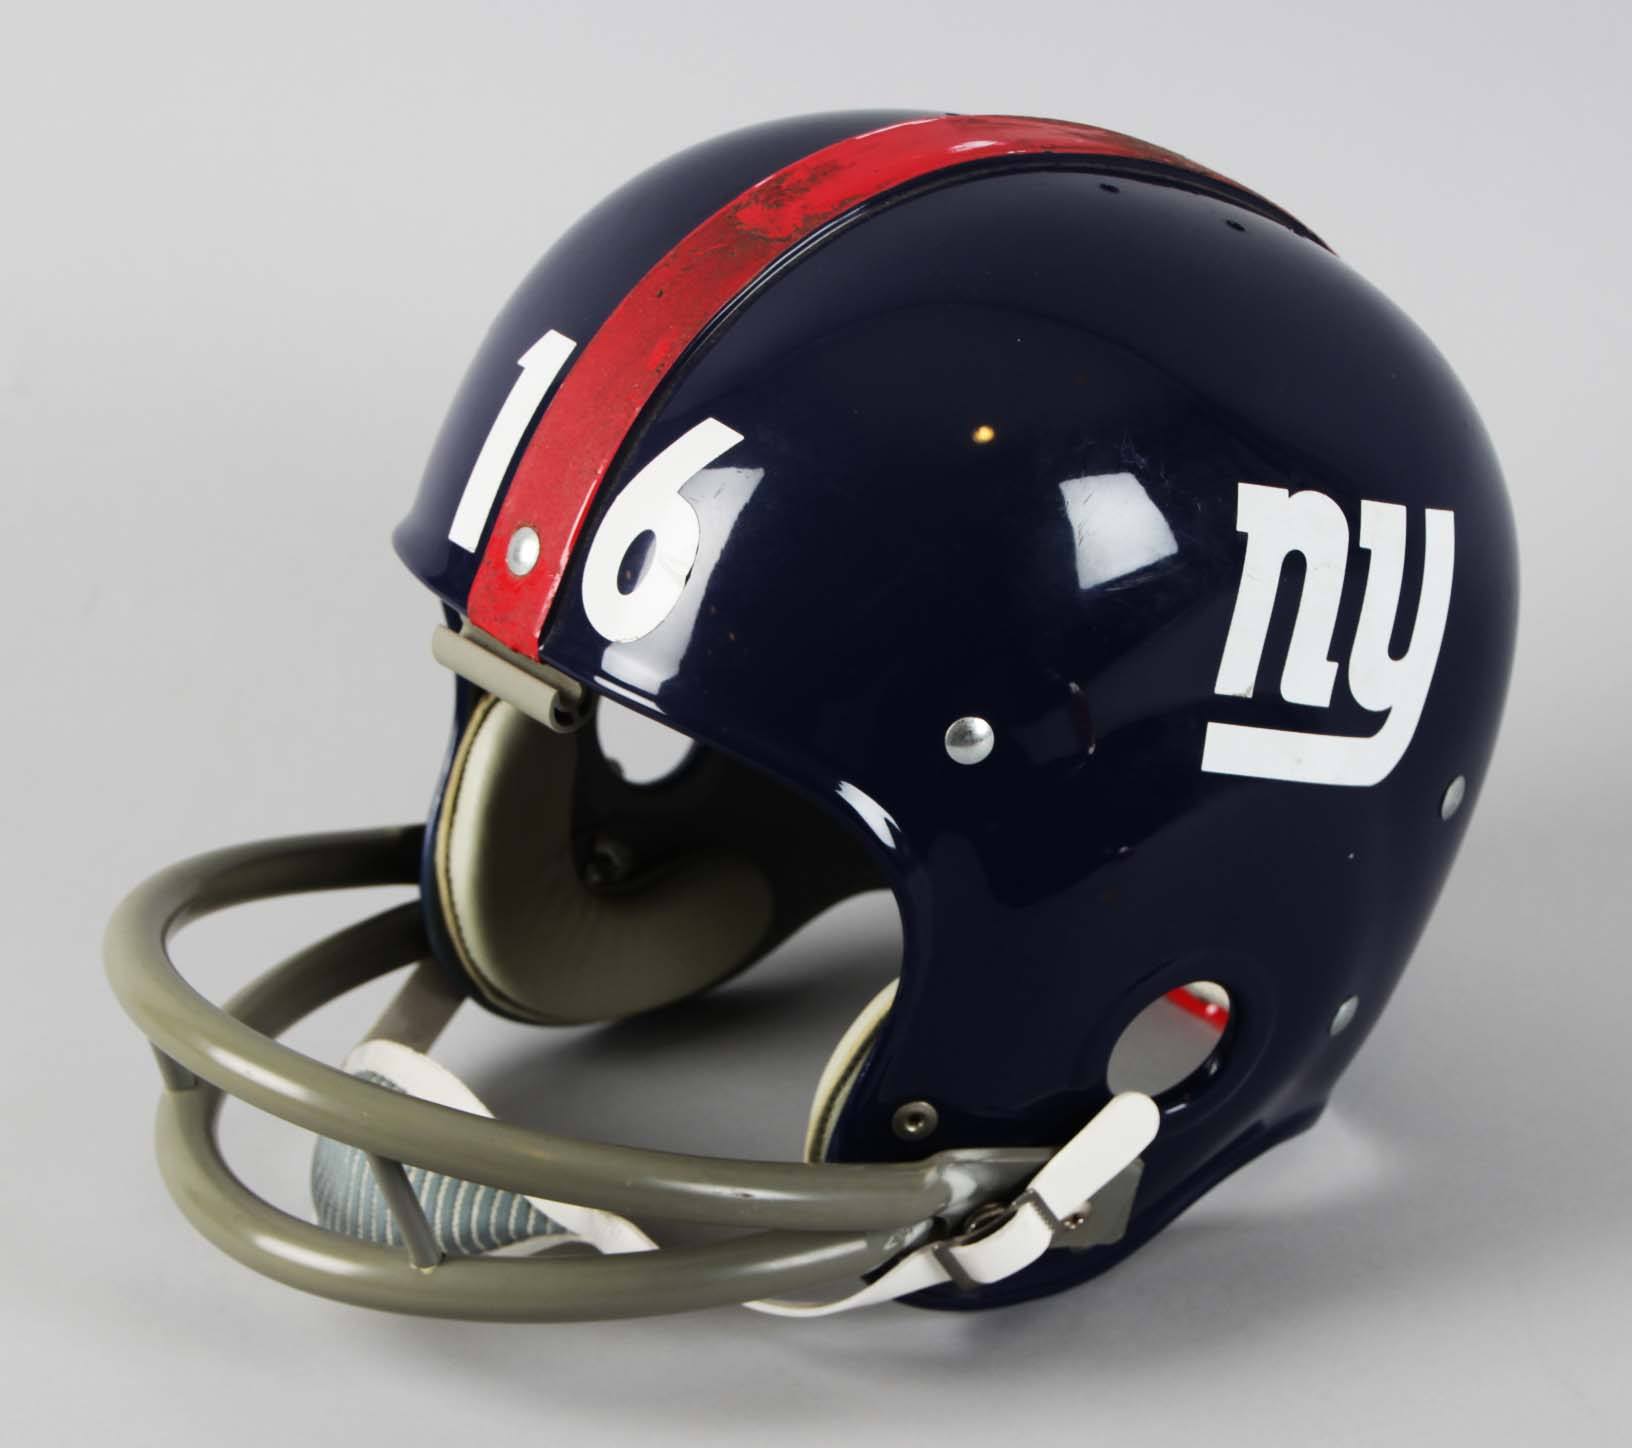 New York Giants – Frank Gifford Original RK2 Kra-Lite Riddell Football  Helmet 25fc05f22